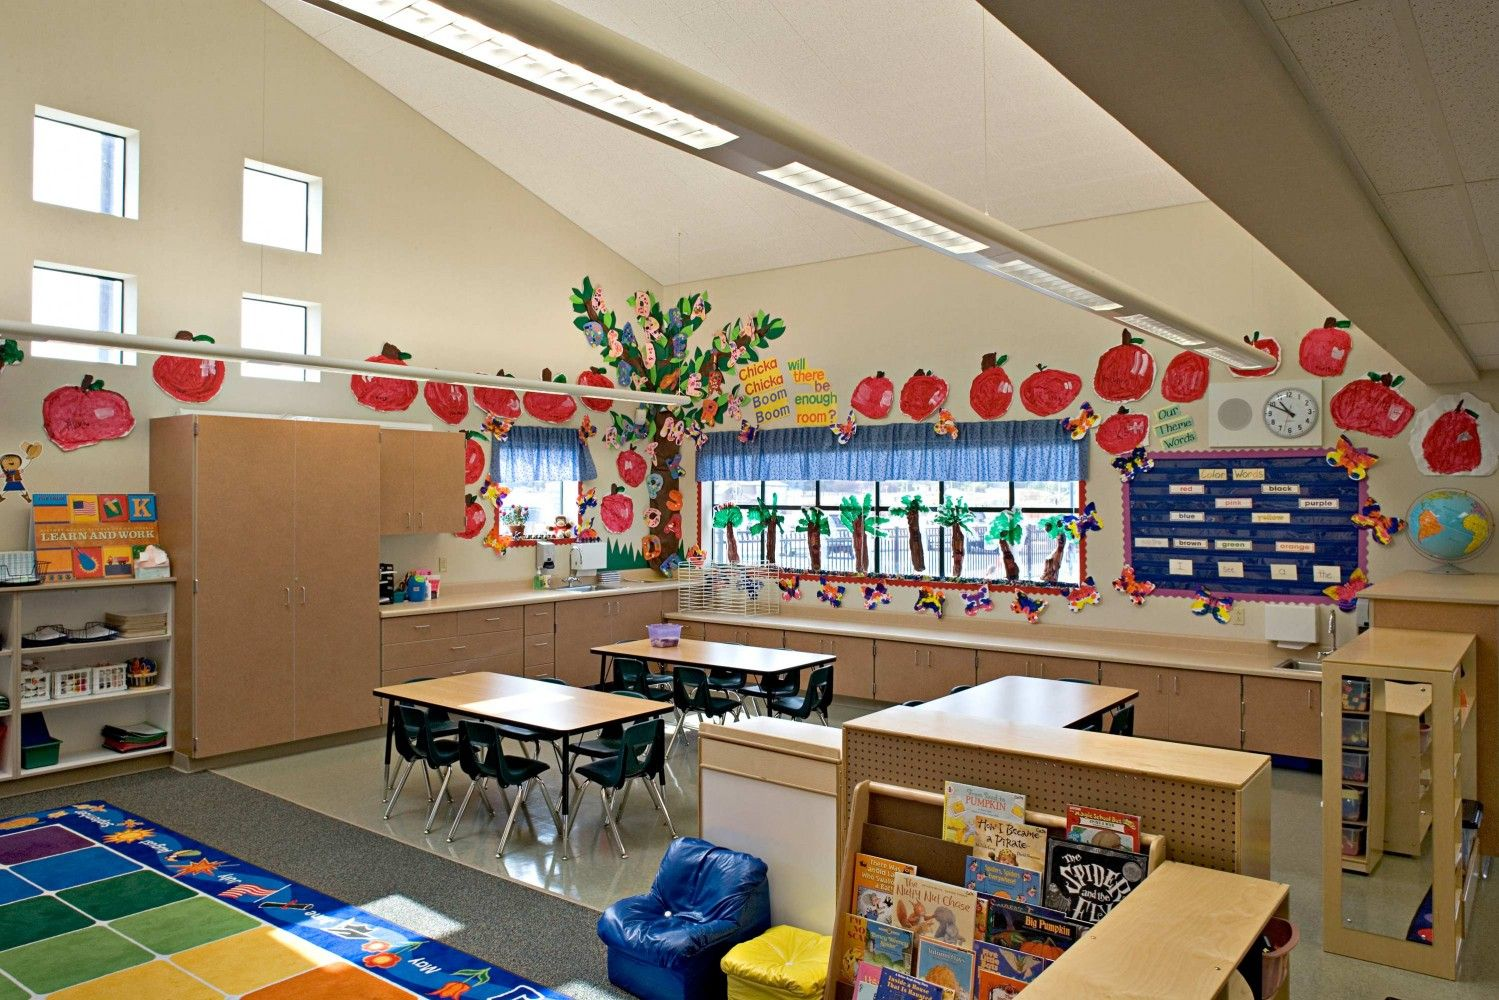 Classroom Decorations For Elementary : The true value of studying education classroom design